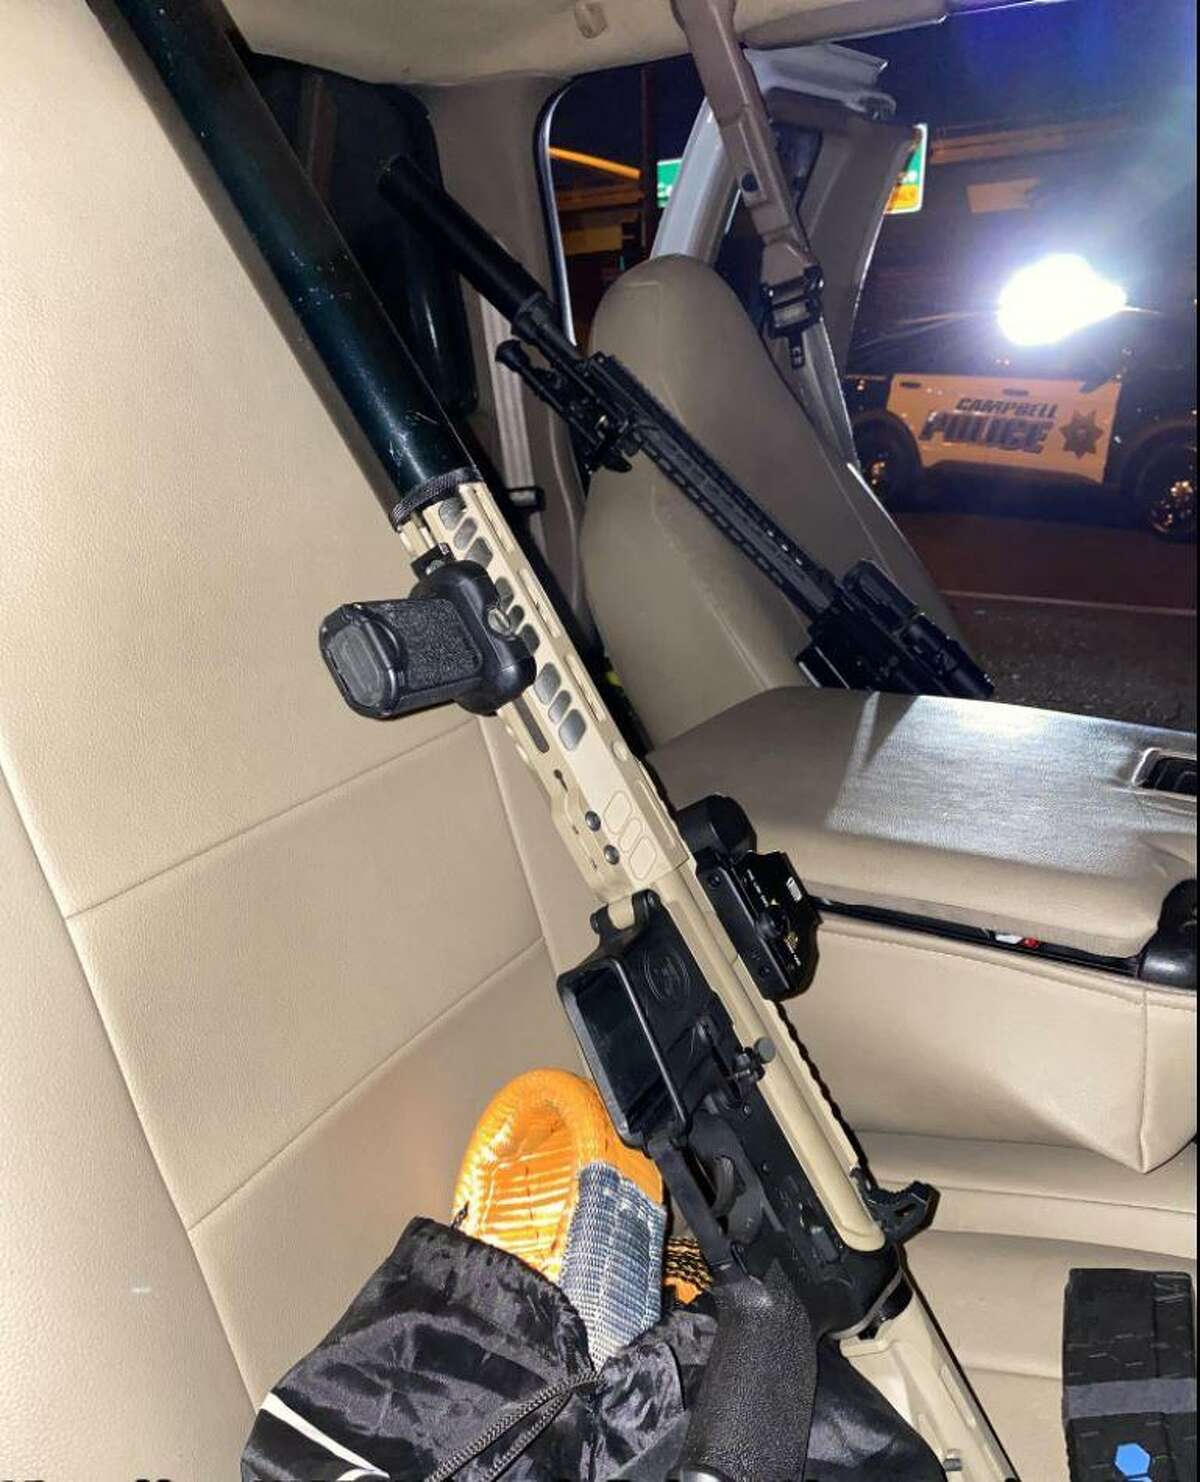 Campbell police said they found weapons, body armor and ammunition inscribed with disturbing messages in a truck being driven by a Los Gatos man. He has been charged with a variety of weapons and drug crimes.